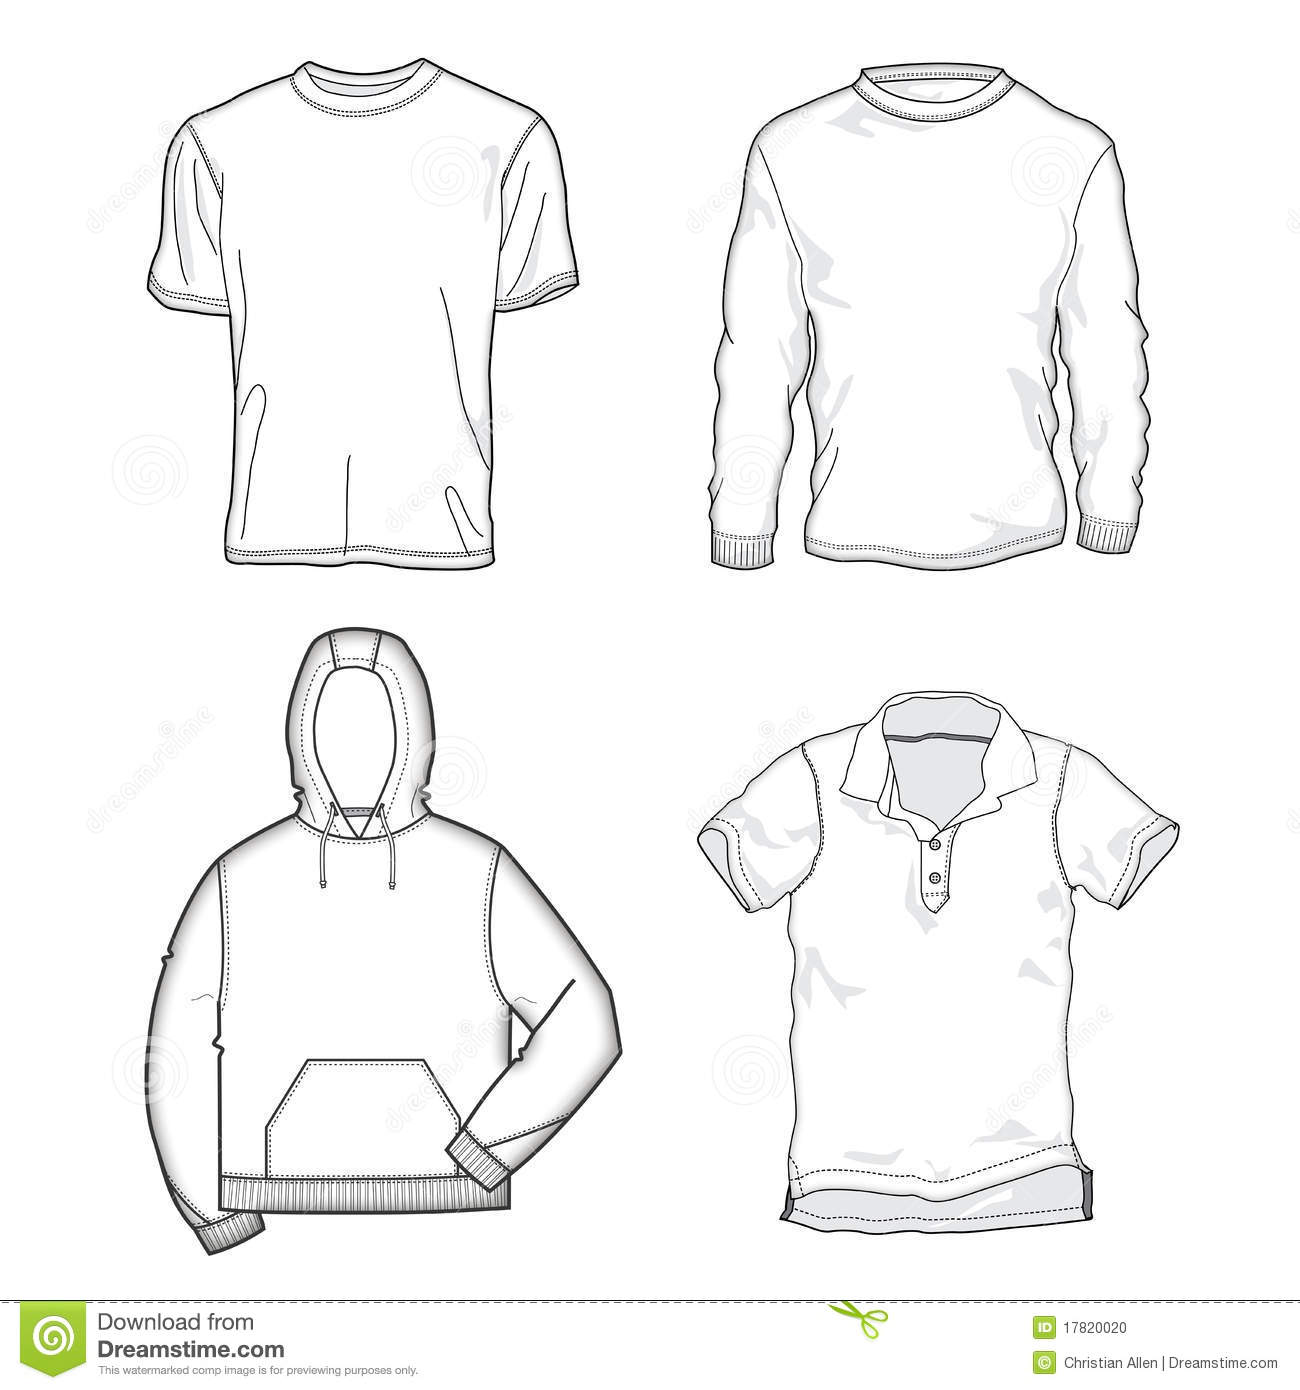 Shirt templates stock vector illustration of outfit for Clothing templates for illustrator